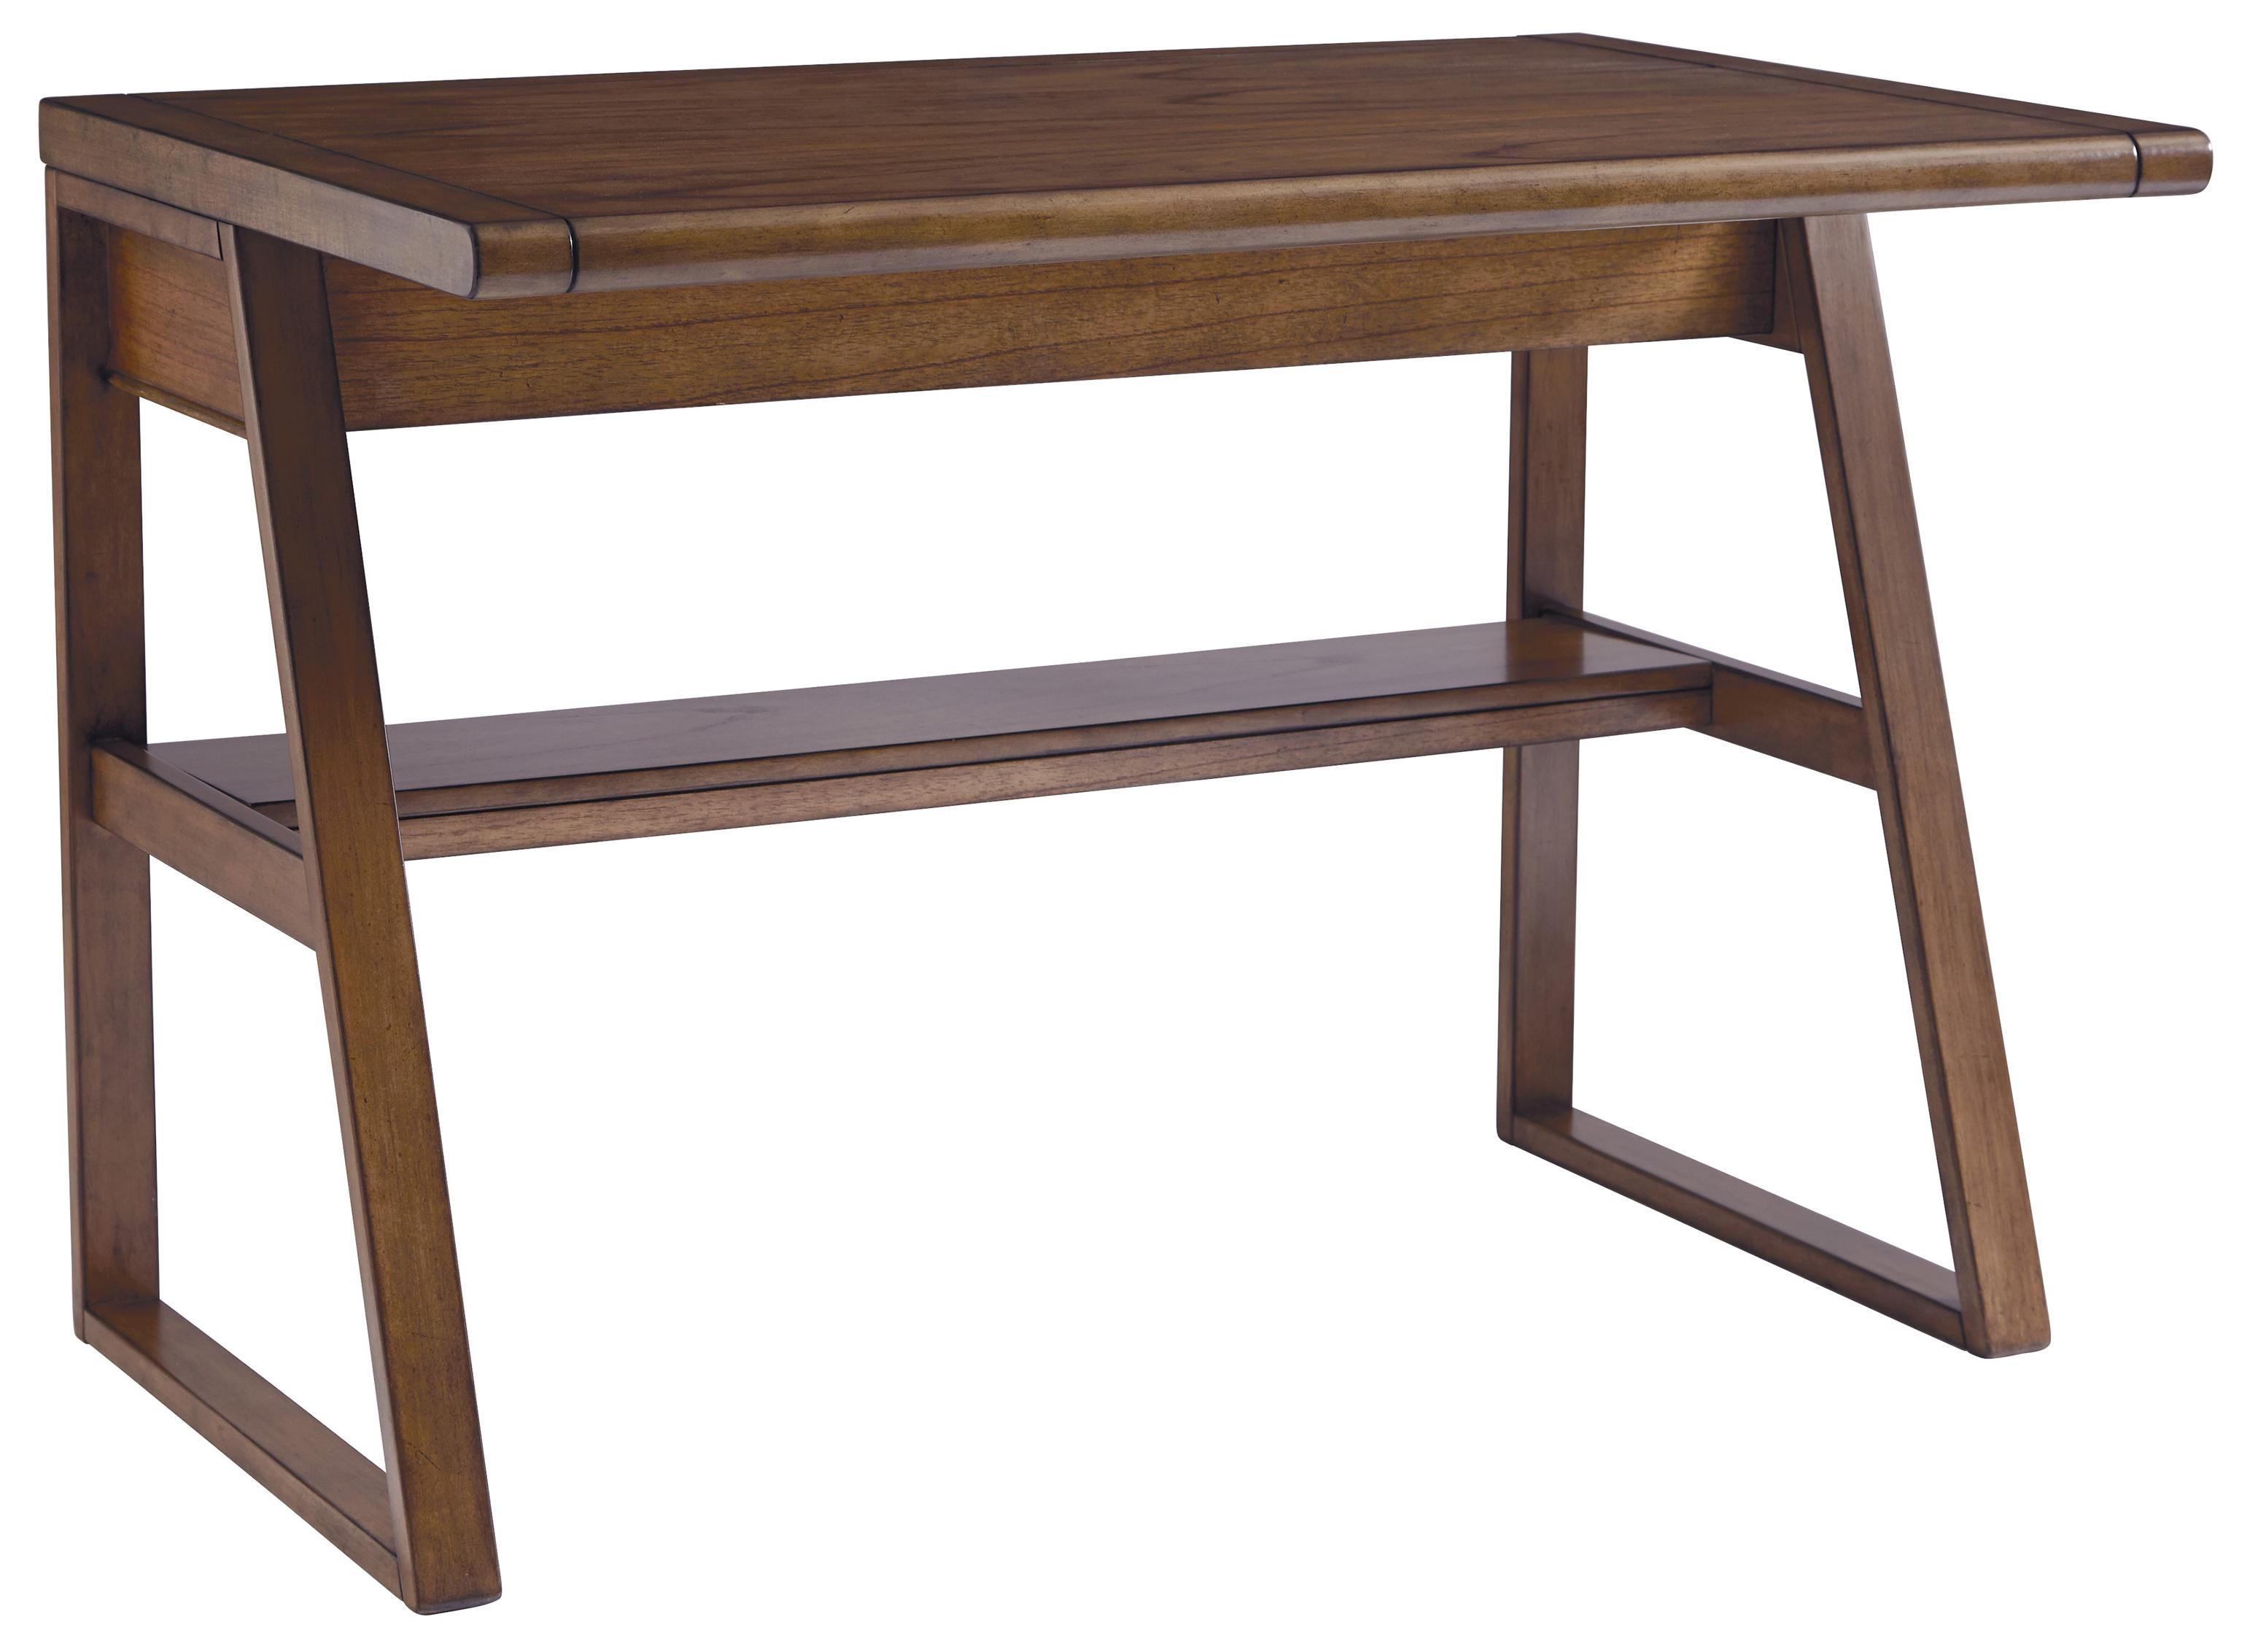 Signature Design by Ashley Birnalla Desk - Item Number: H585-10